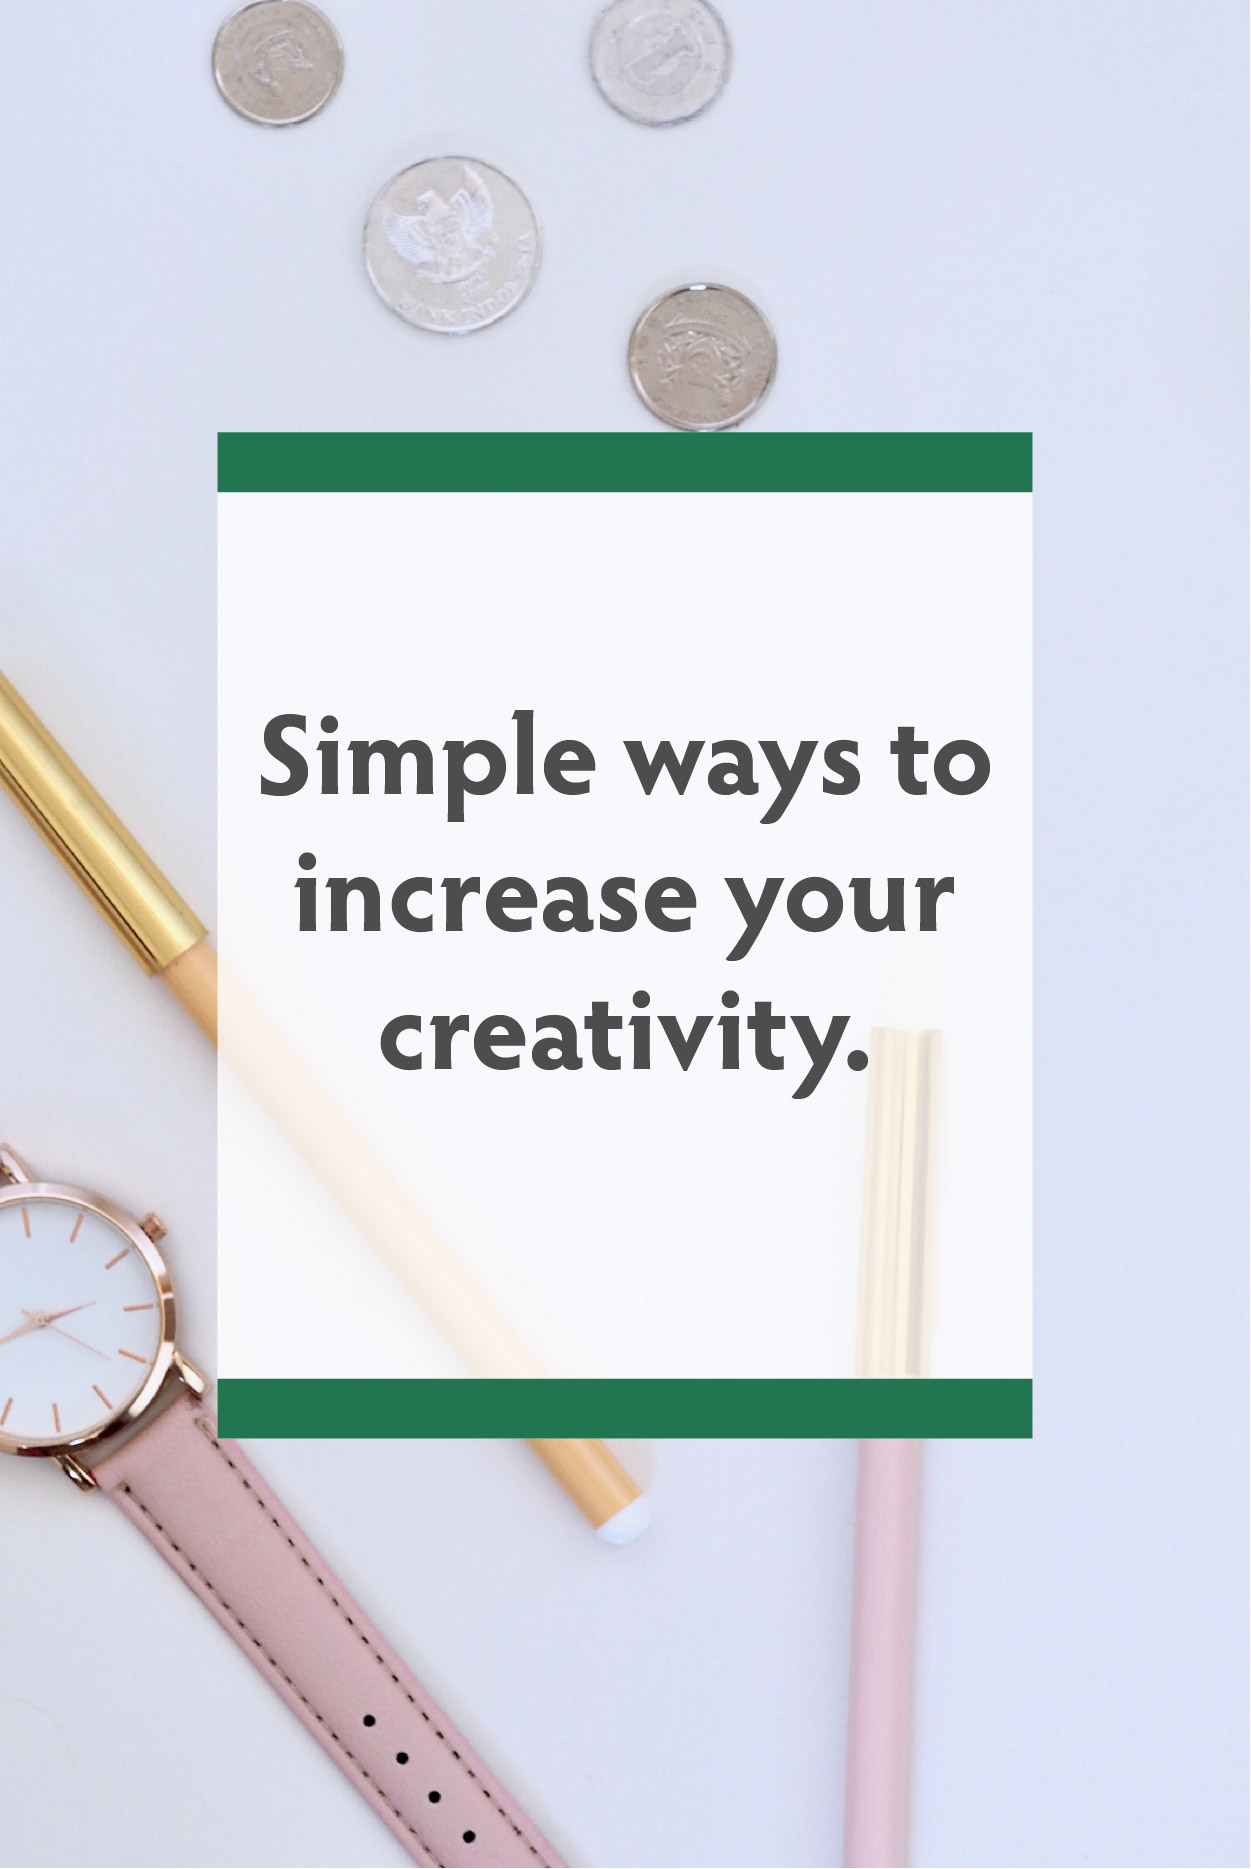 Simple ways to increase your creativity.jpg